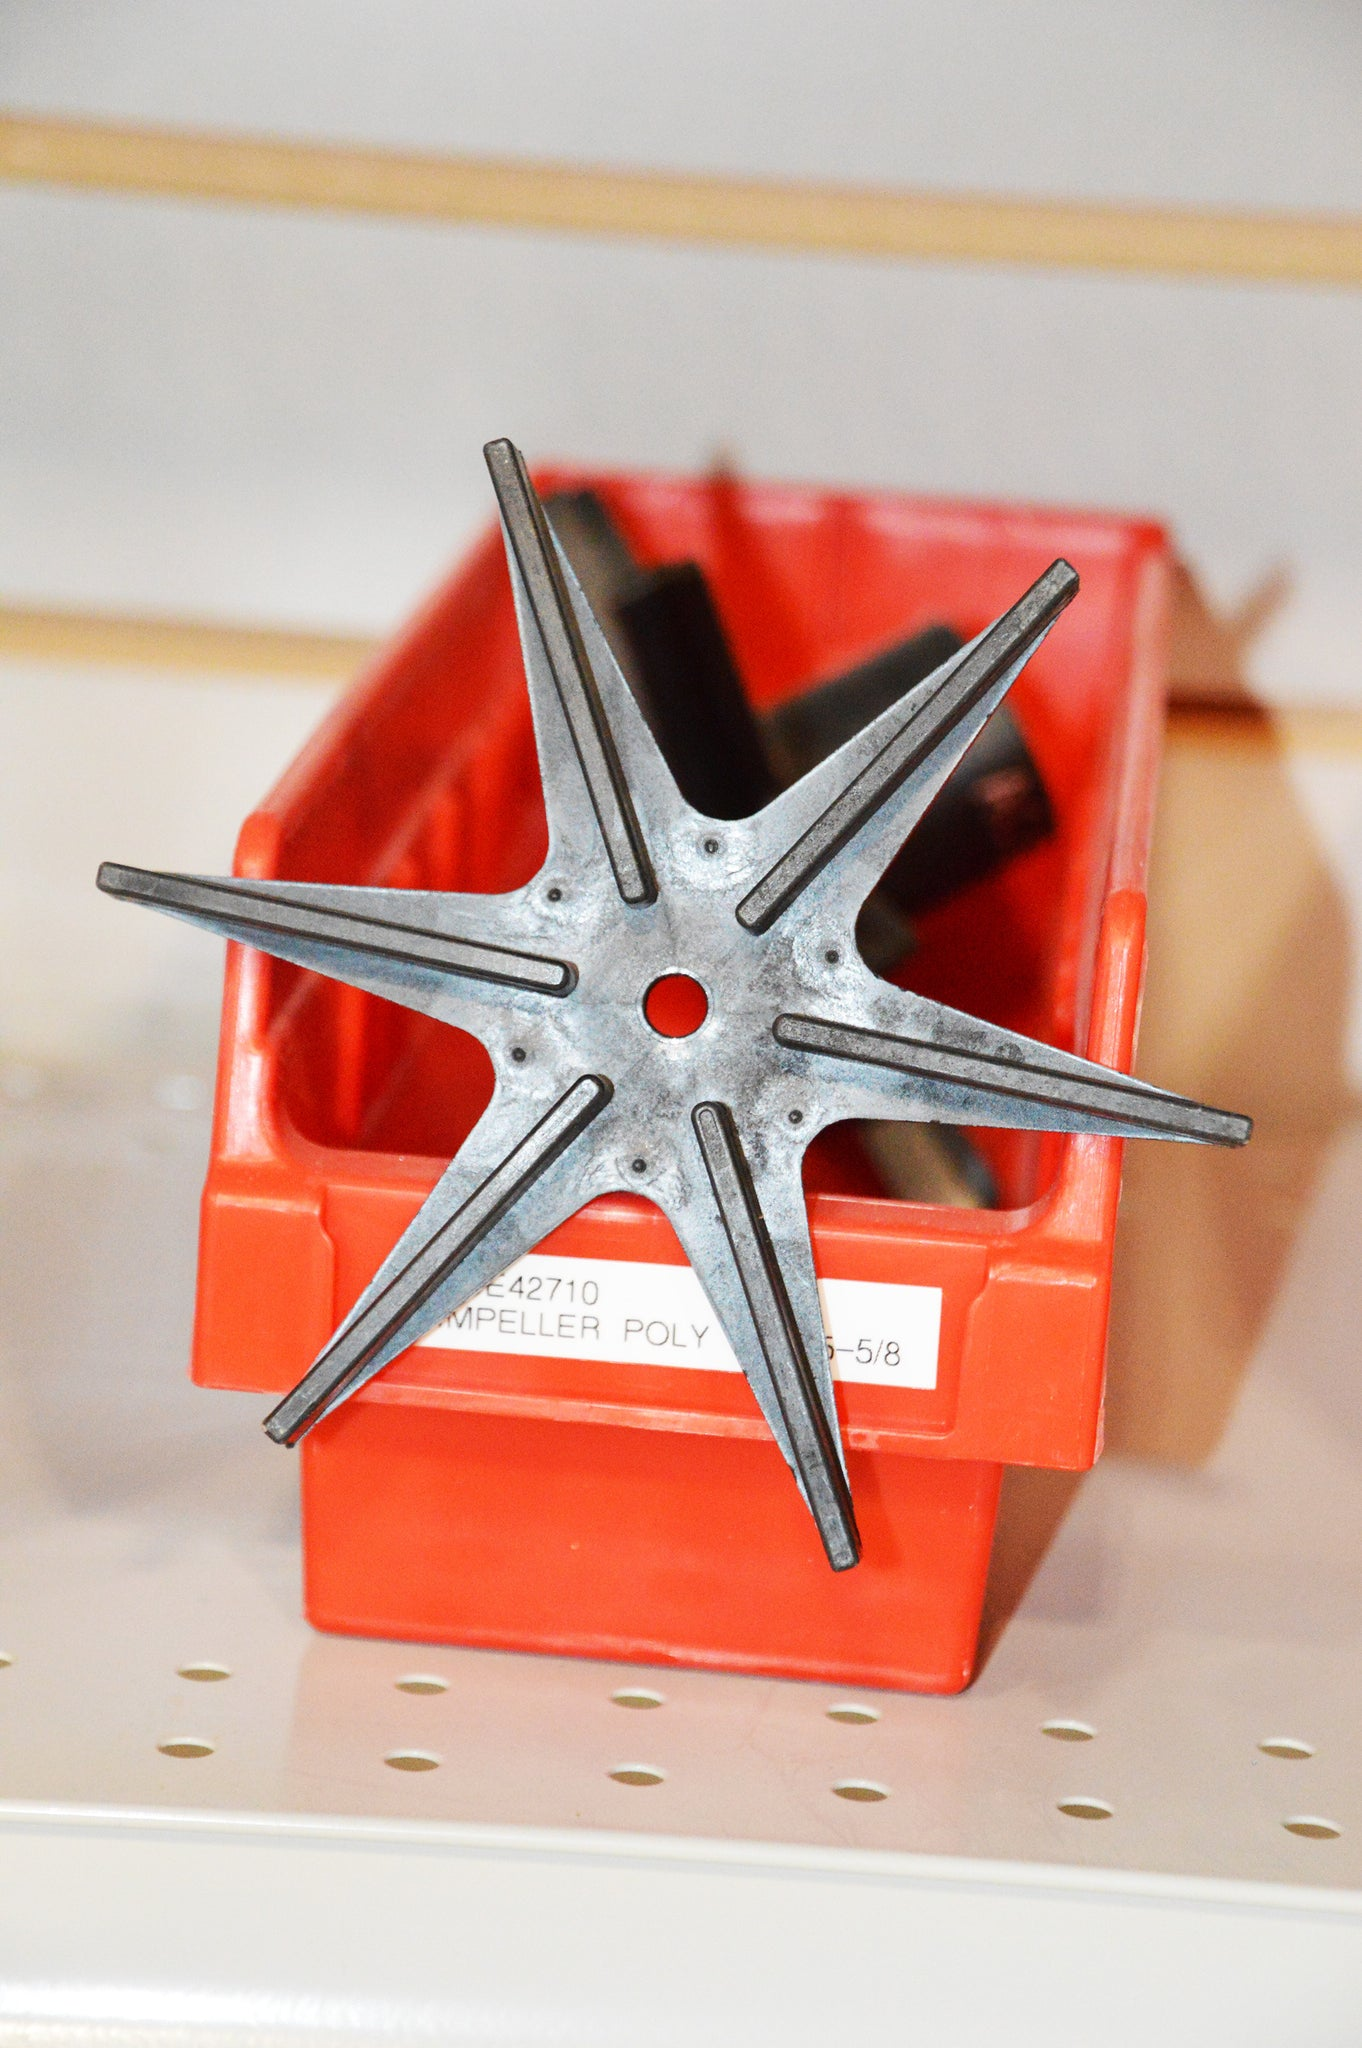 Impeller Poly: ACE42710